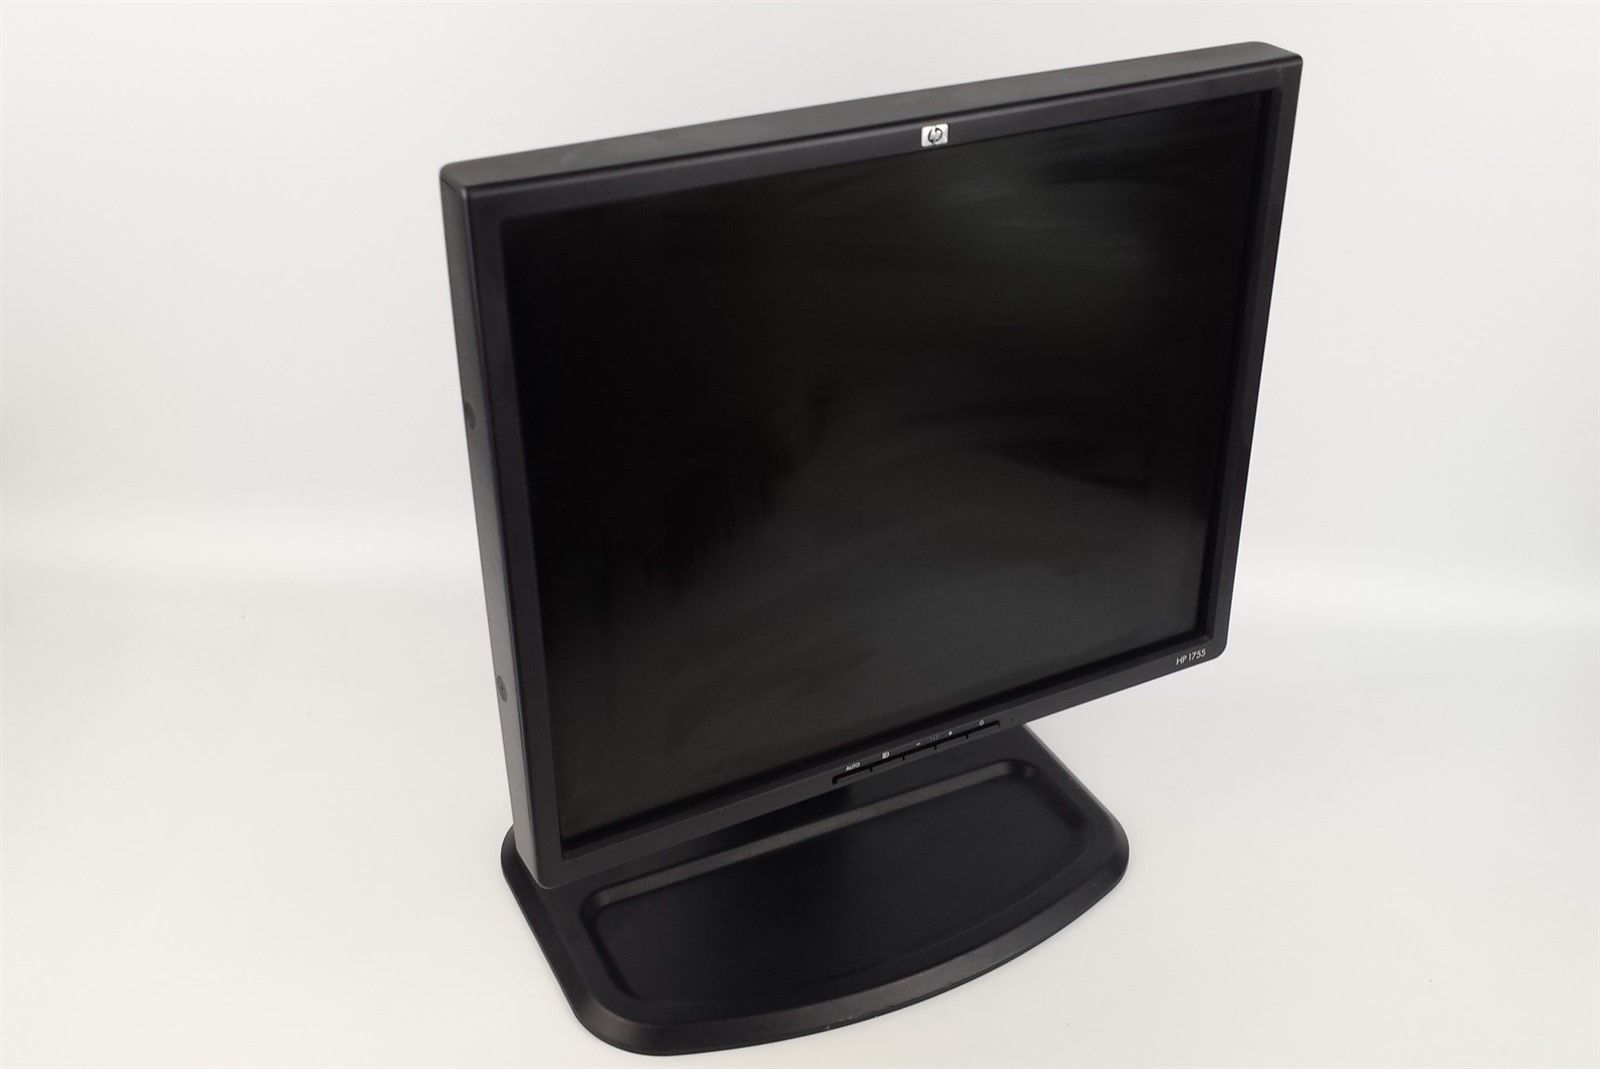 "HP L1755 LCD Flat Panel Display Monitor 17"" with Power Cord VGA Cord"